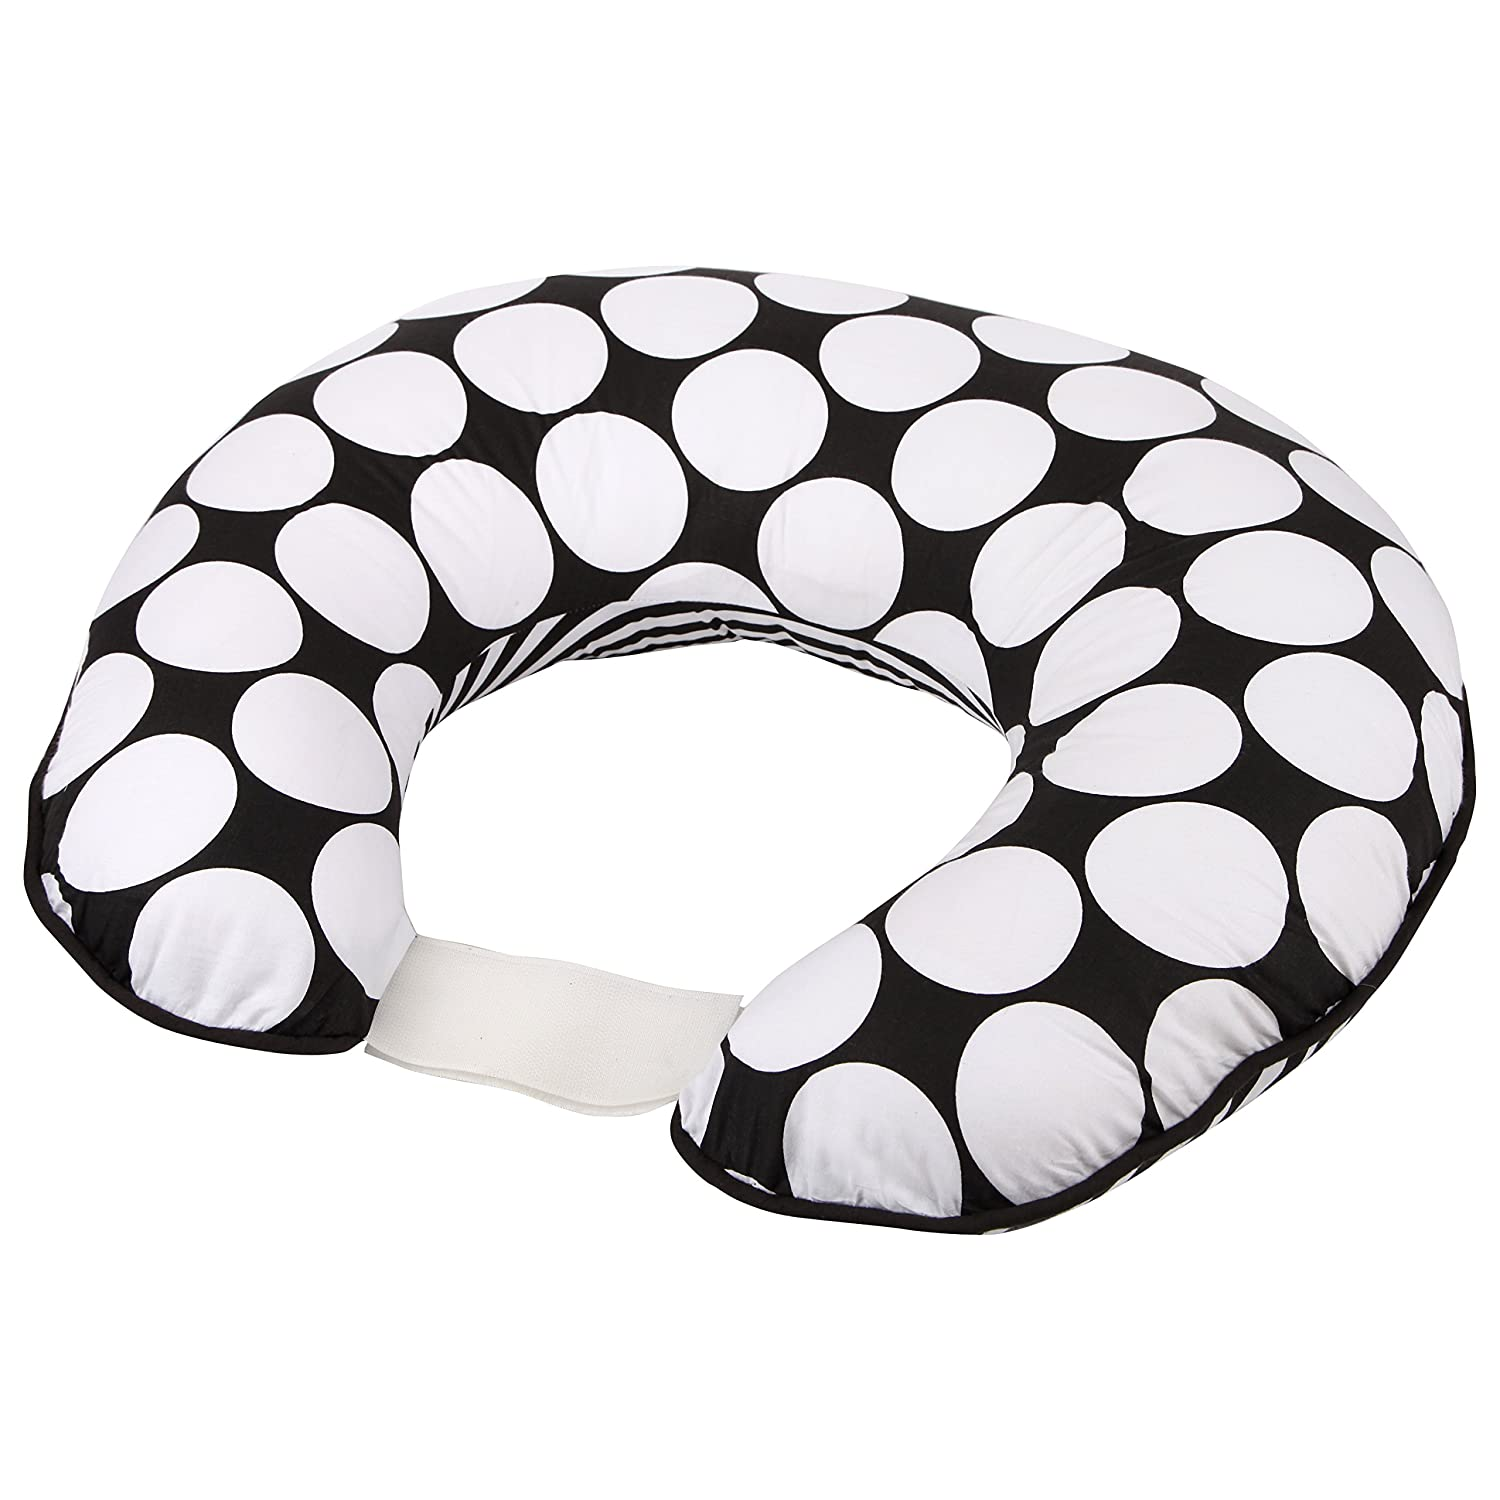 Bacati - Dots/pin Stripes Black/White Nursing Pillow Cover Only in Ultra-Soft 100% Cotton Fabric in a Fashionable Two-Sided Design